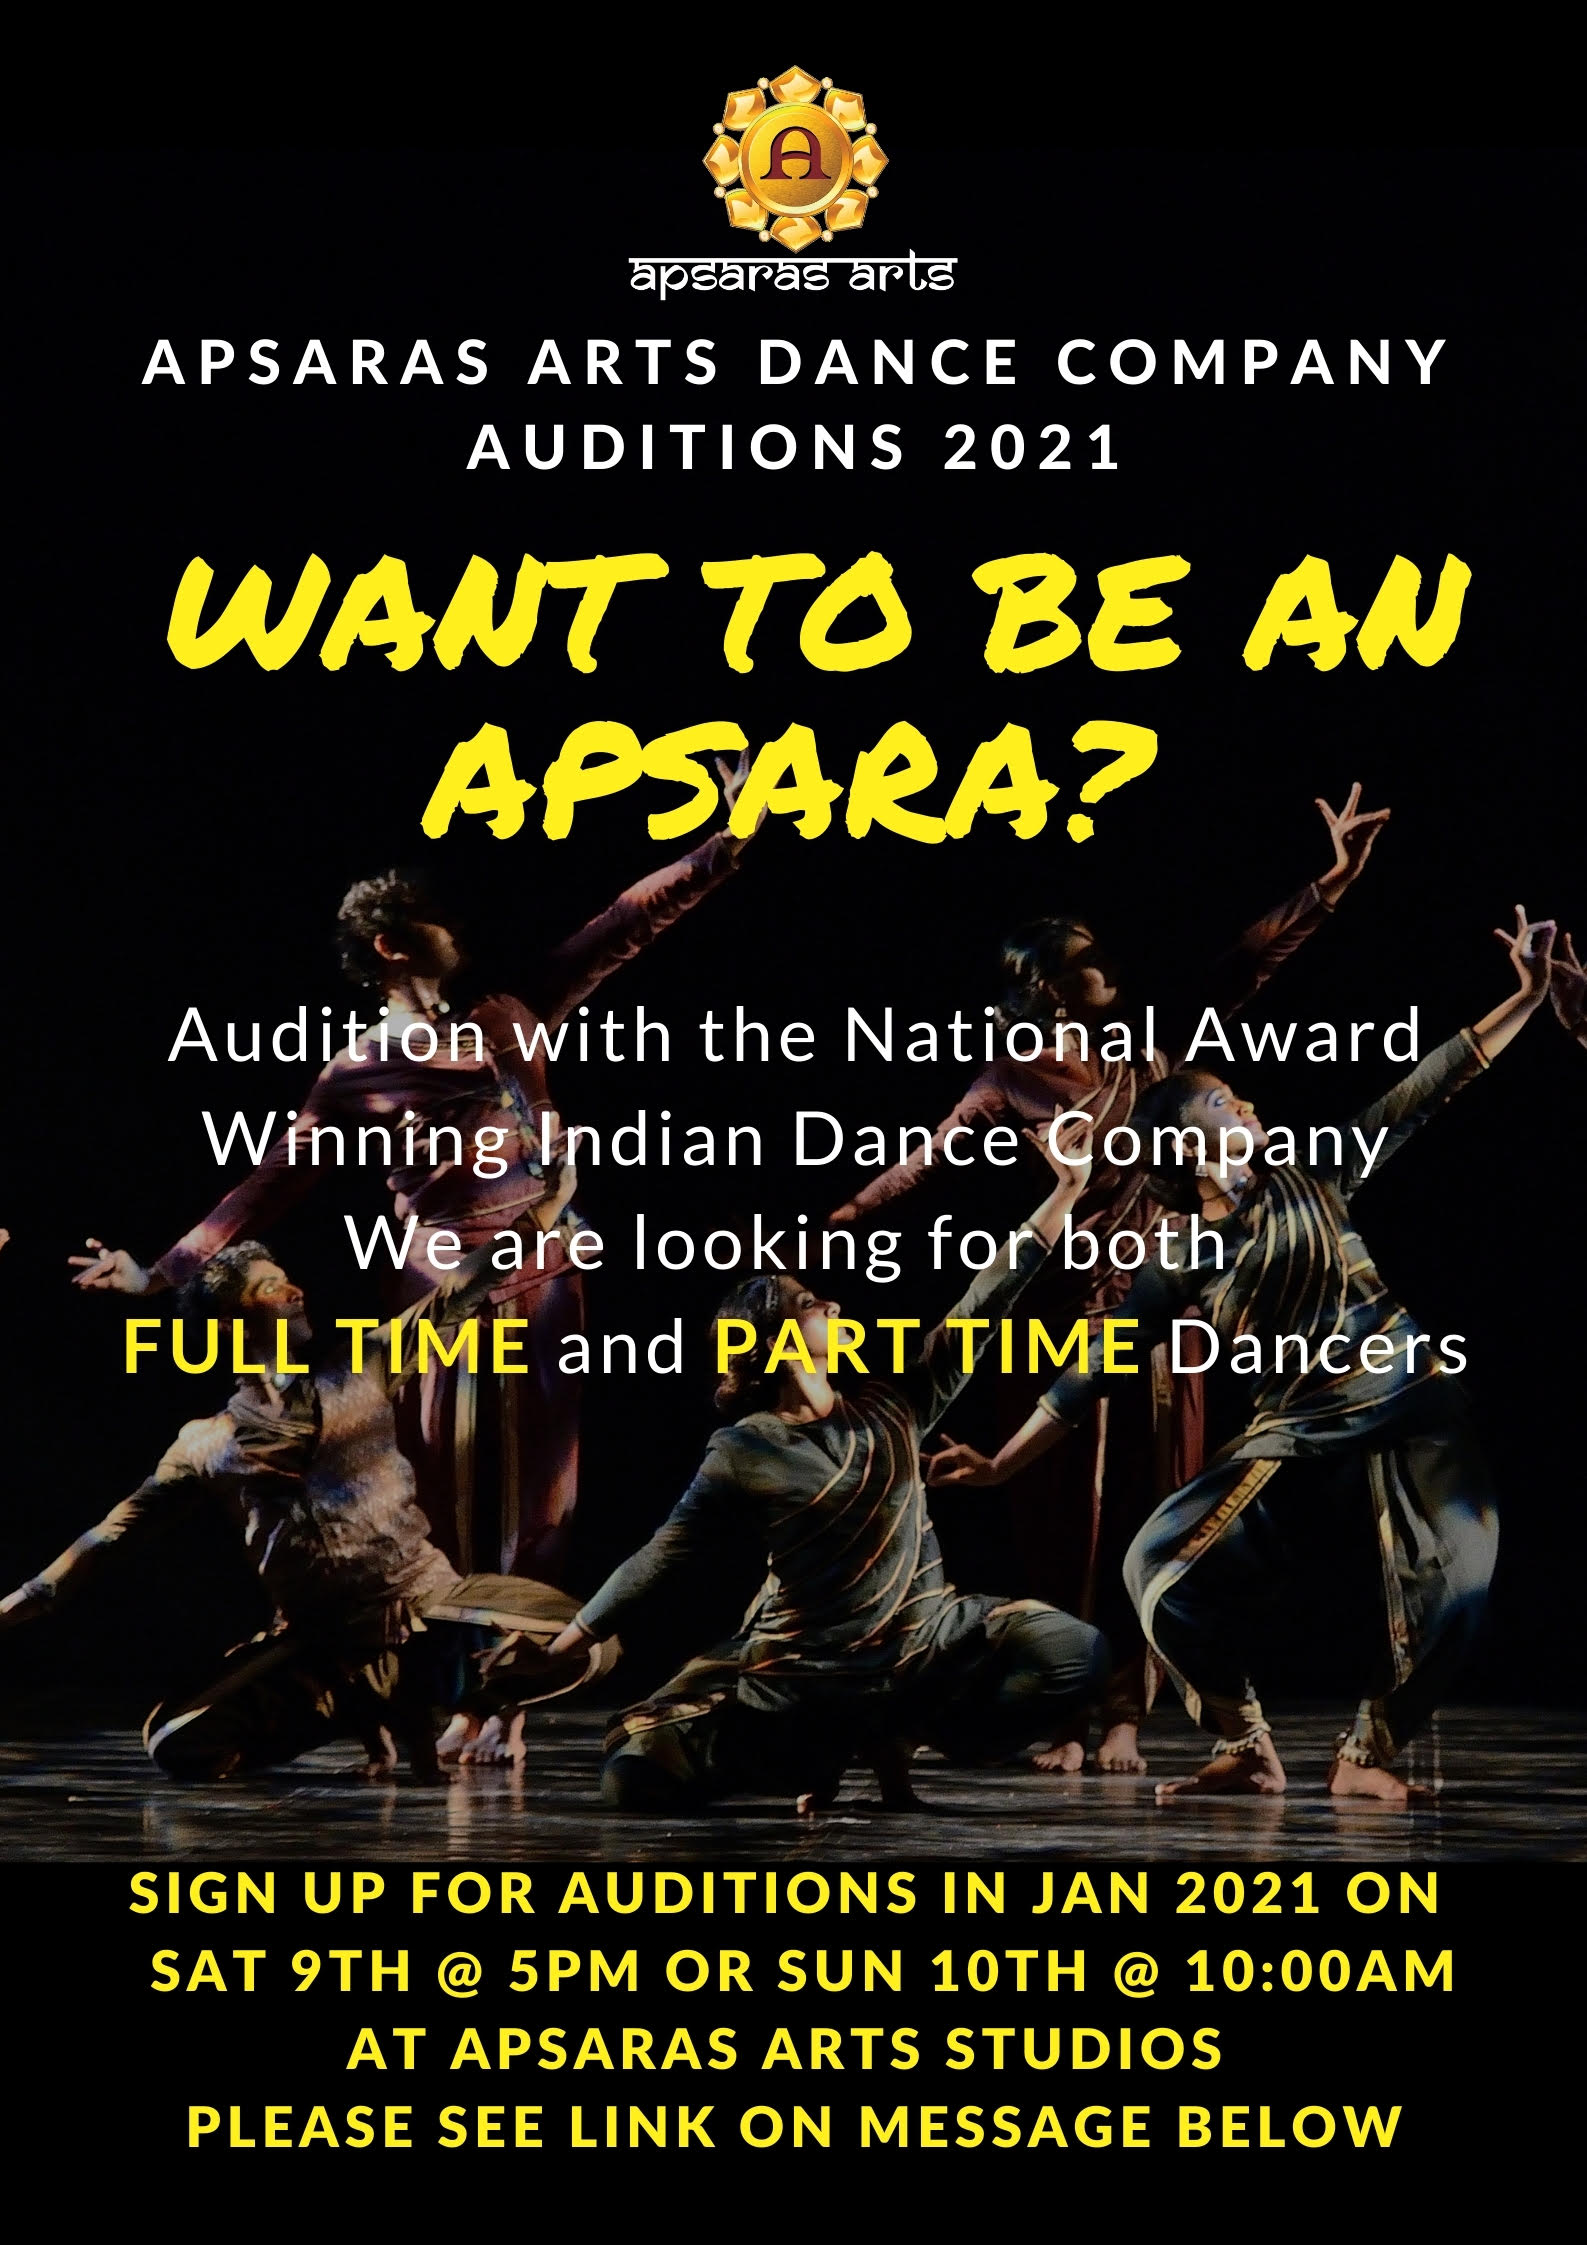 AUDITIONS - January 2021 Apsaras Arts Dance Company Calls for Auditions